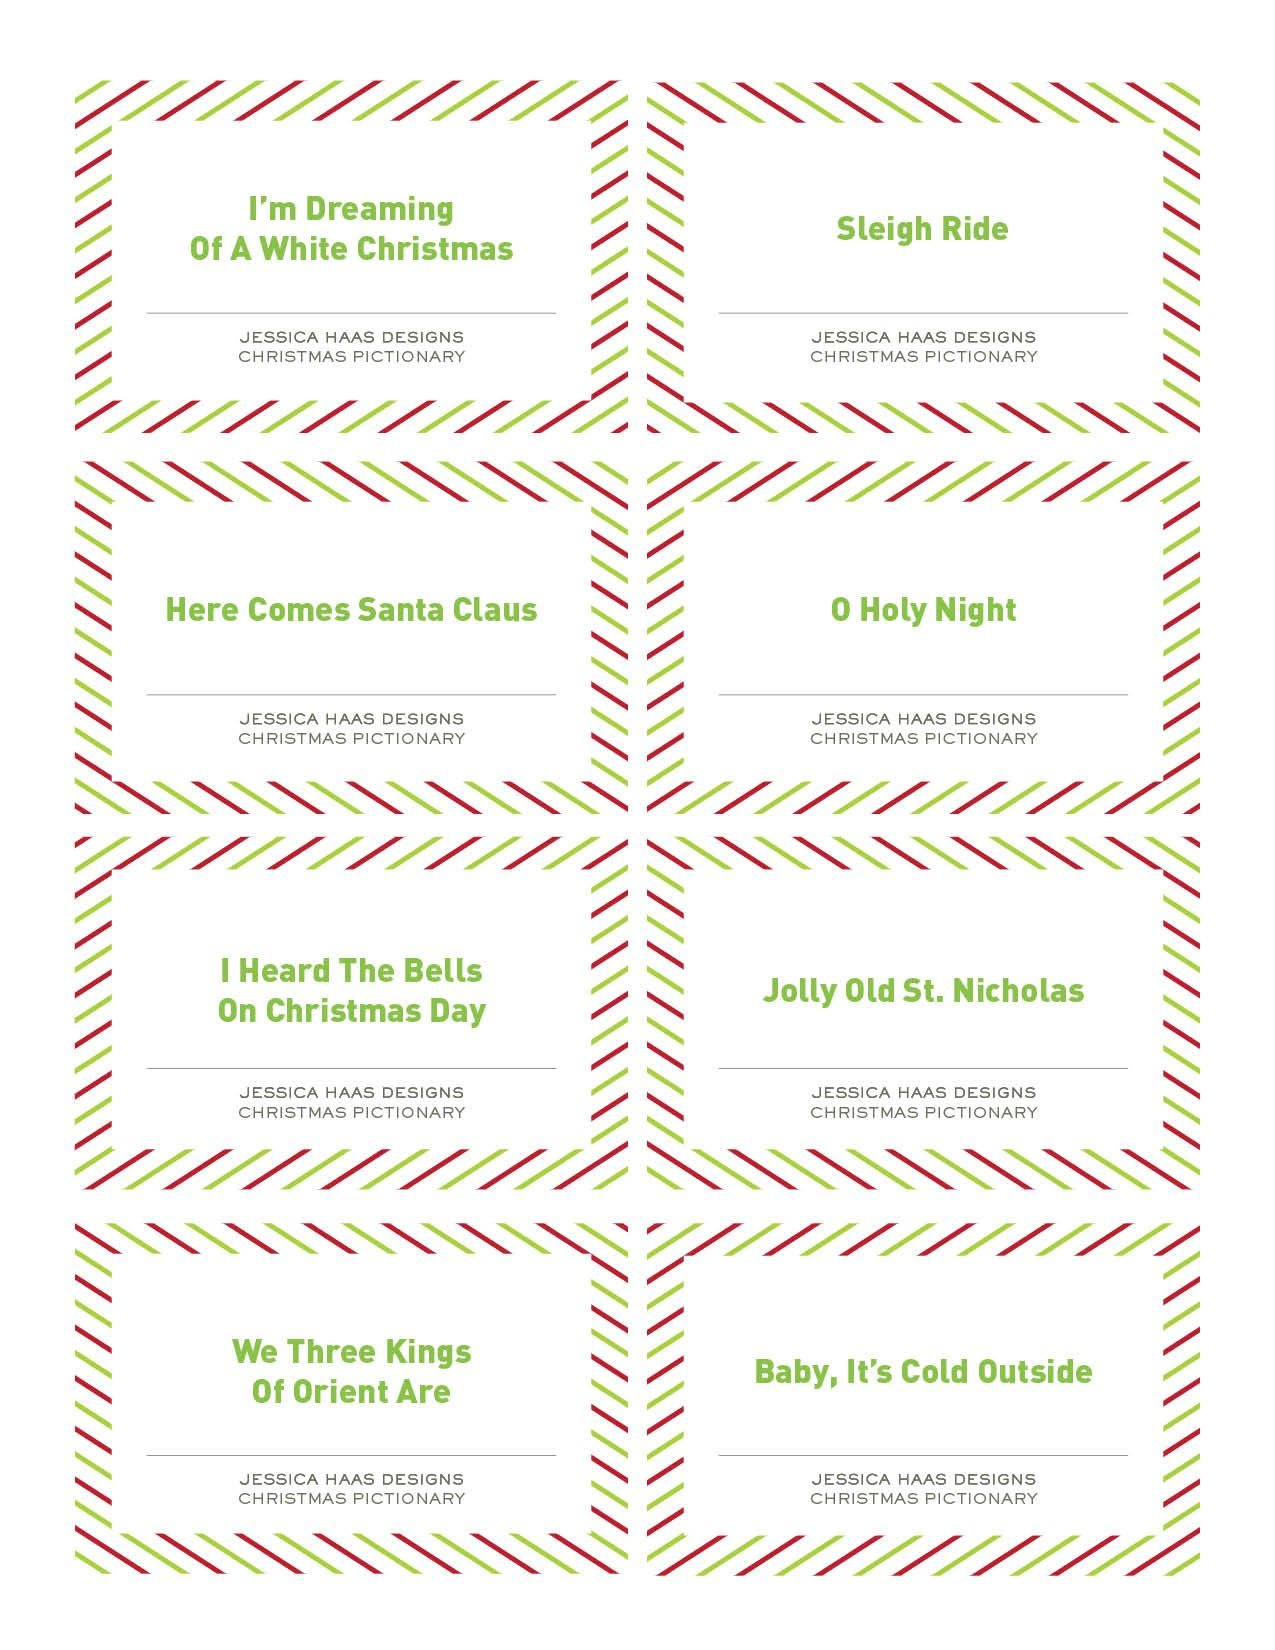 Free Christmas Pictionary Game   Holiday Ideas   Christmas Games - Free Printable Christmas Pictionary Cards